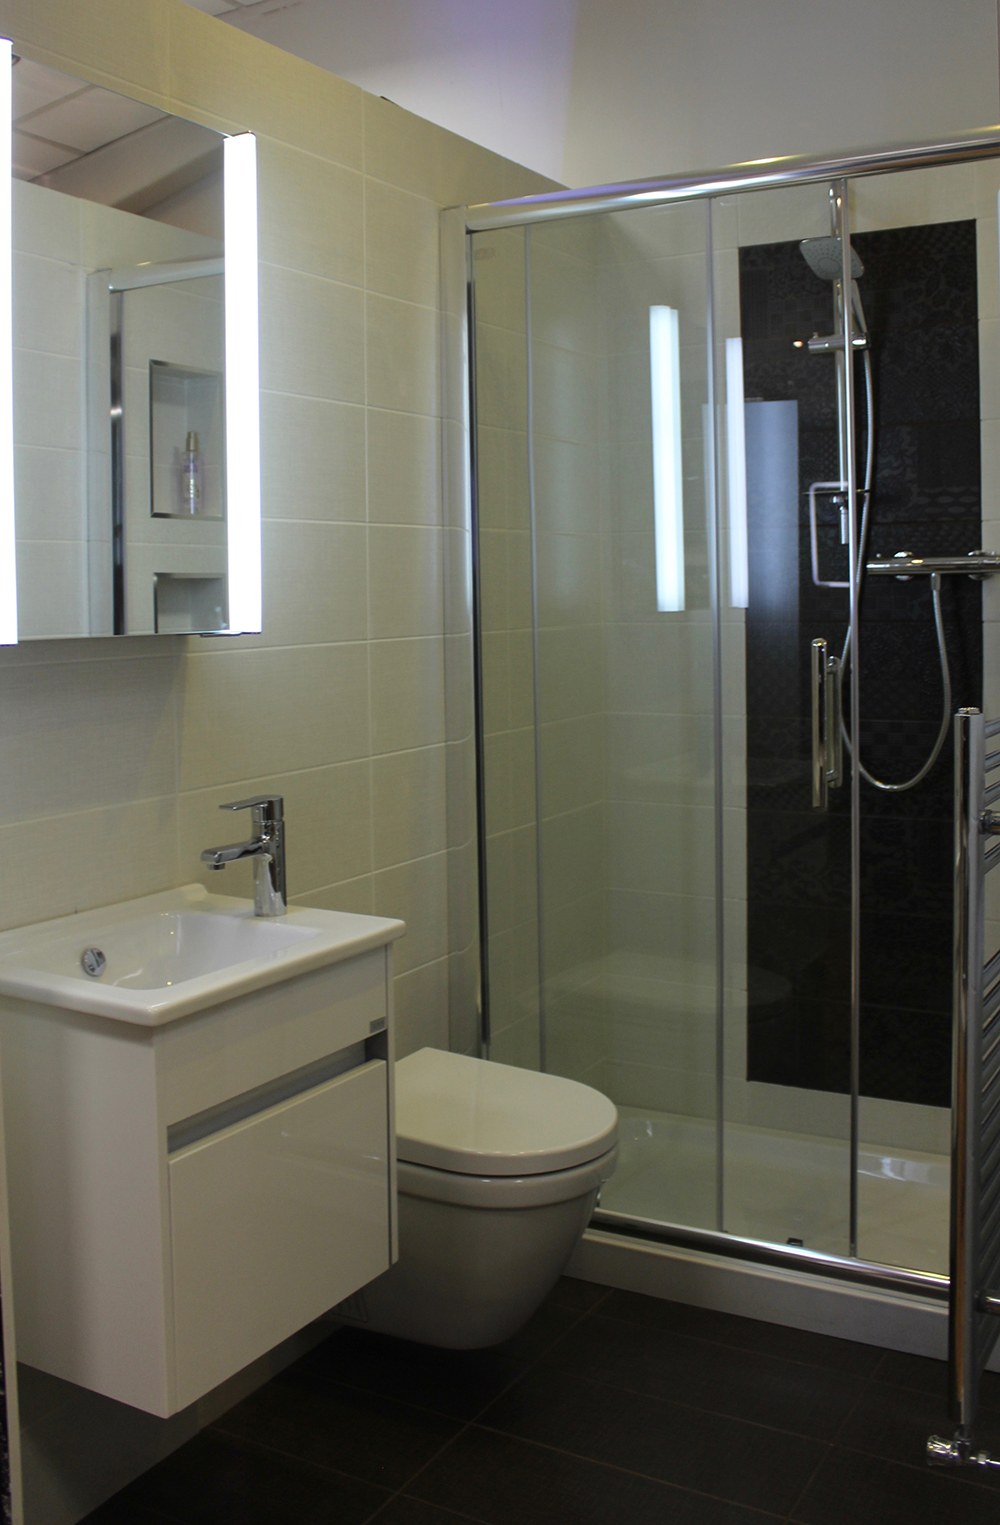 Stylish Bathroom Suites Dublin Image 7